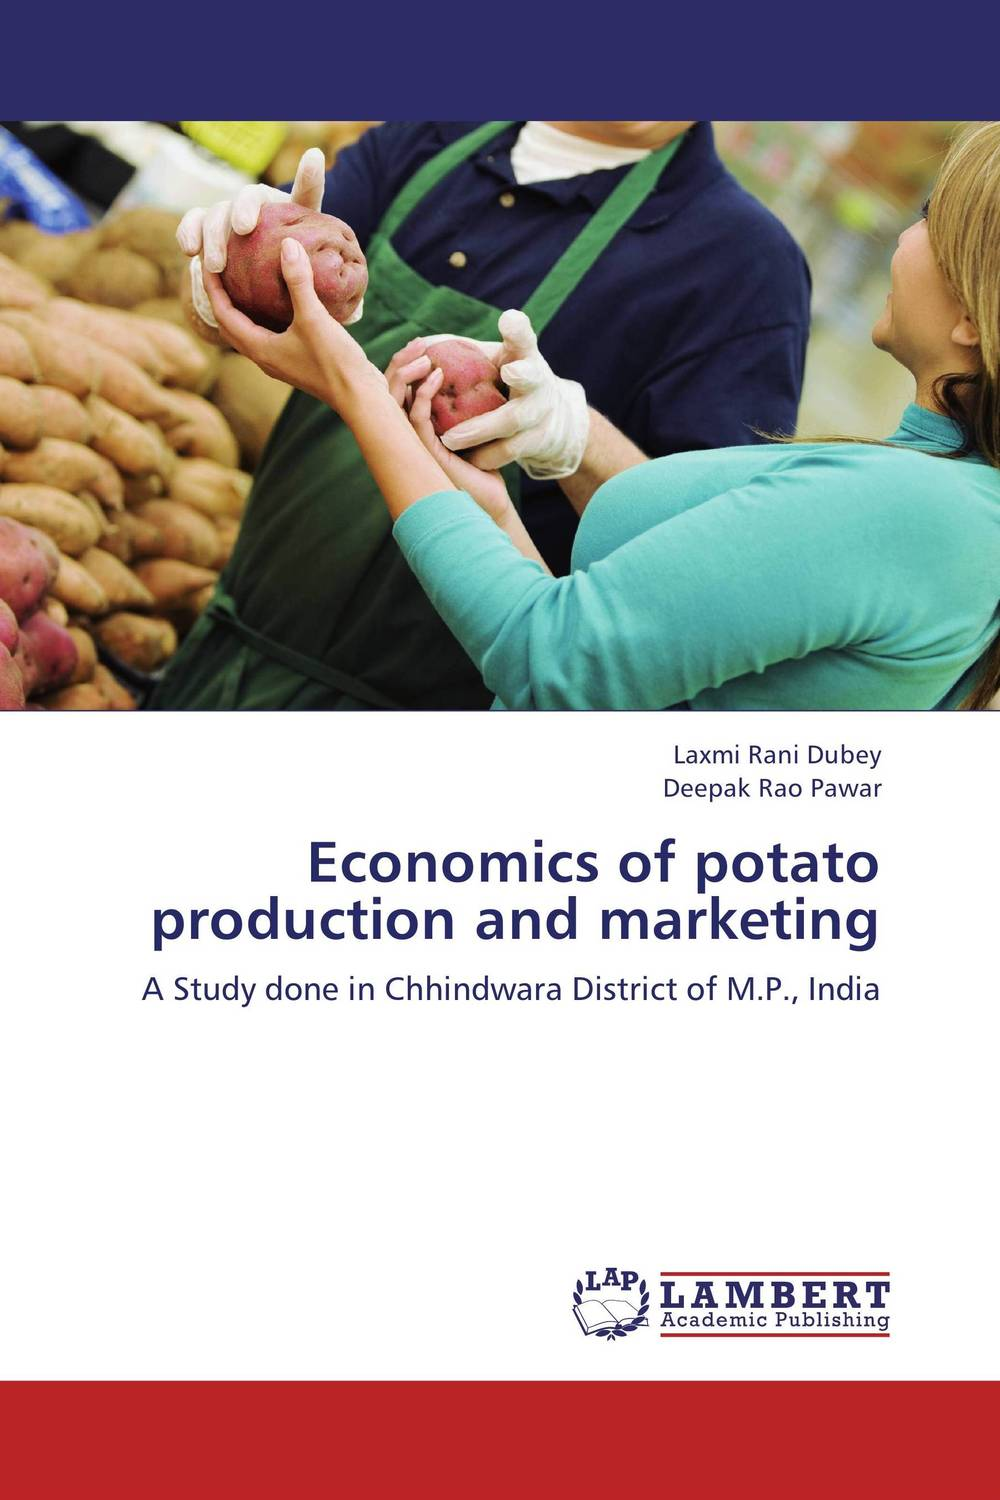 Economics of potato production and marketing shoji lal bairwa rakesh singh and saket kushwaha economics of milk marketing